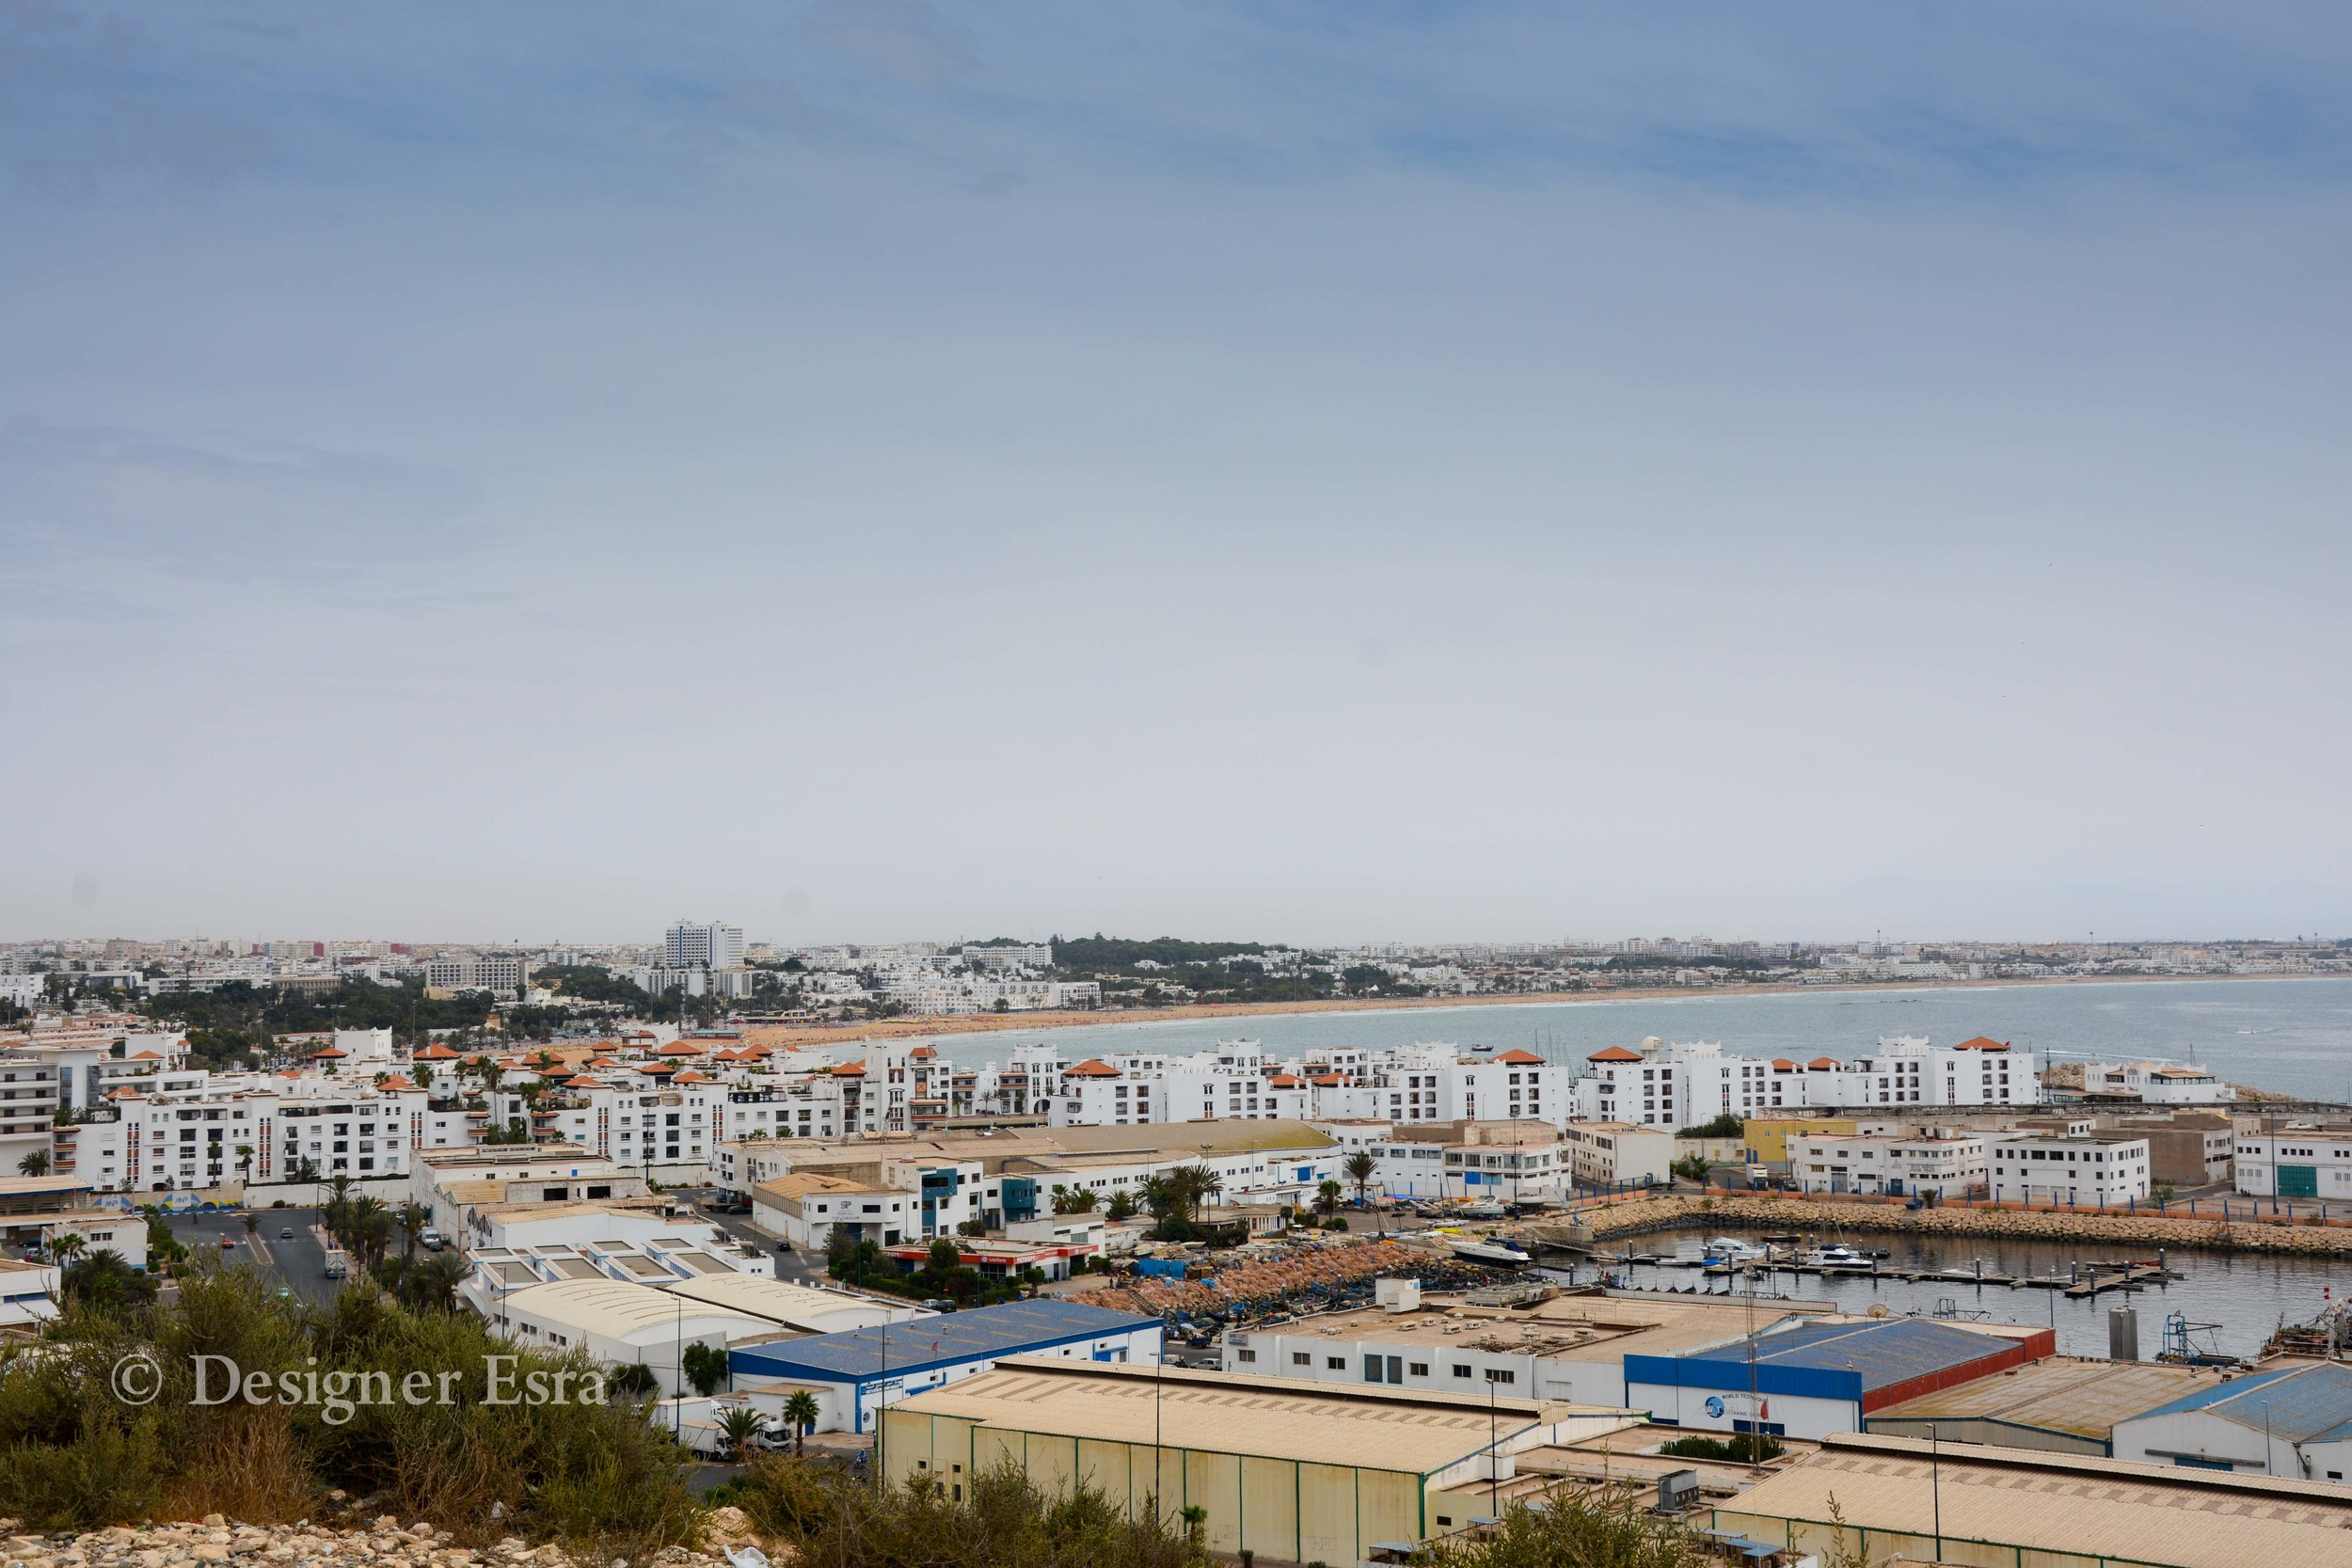 Full View of Agadir, Morocco